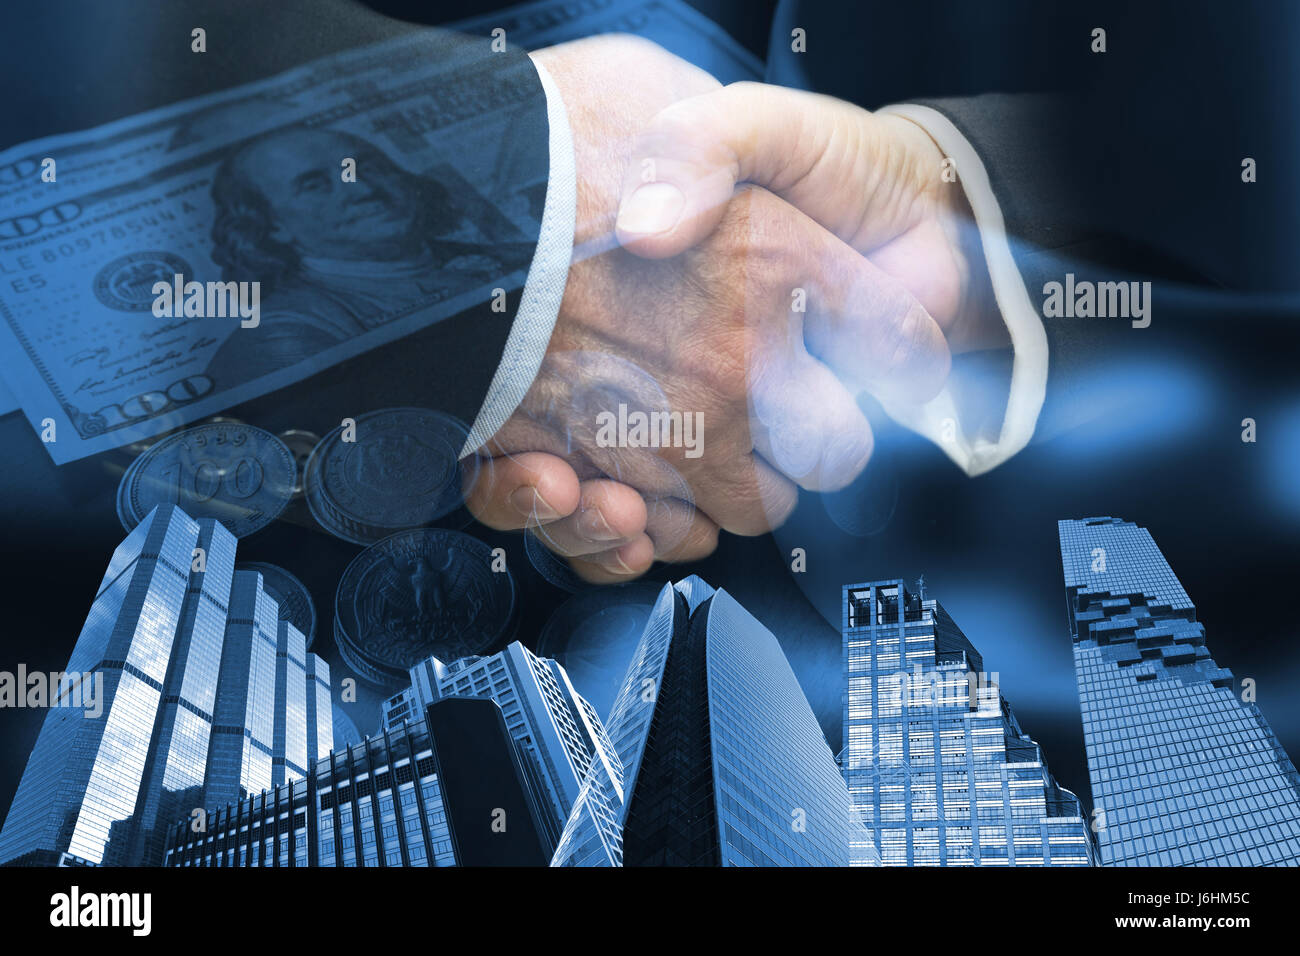 Two Business people shaking hands and abstract blue tone of buildings and dollar note background. Finishing up meeting - Stock Image